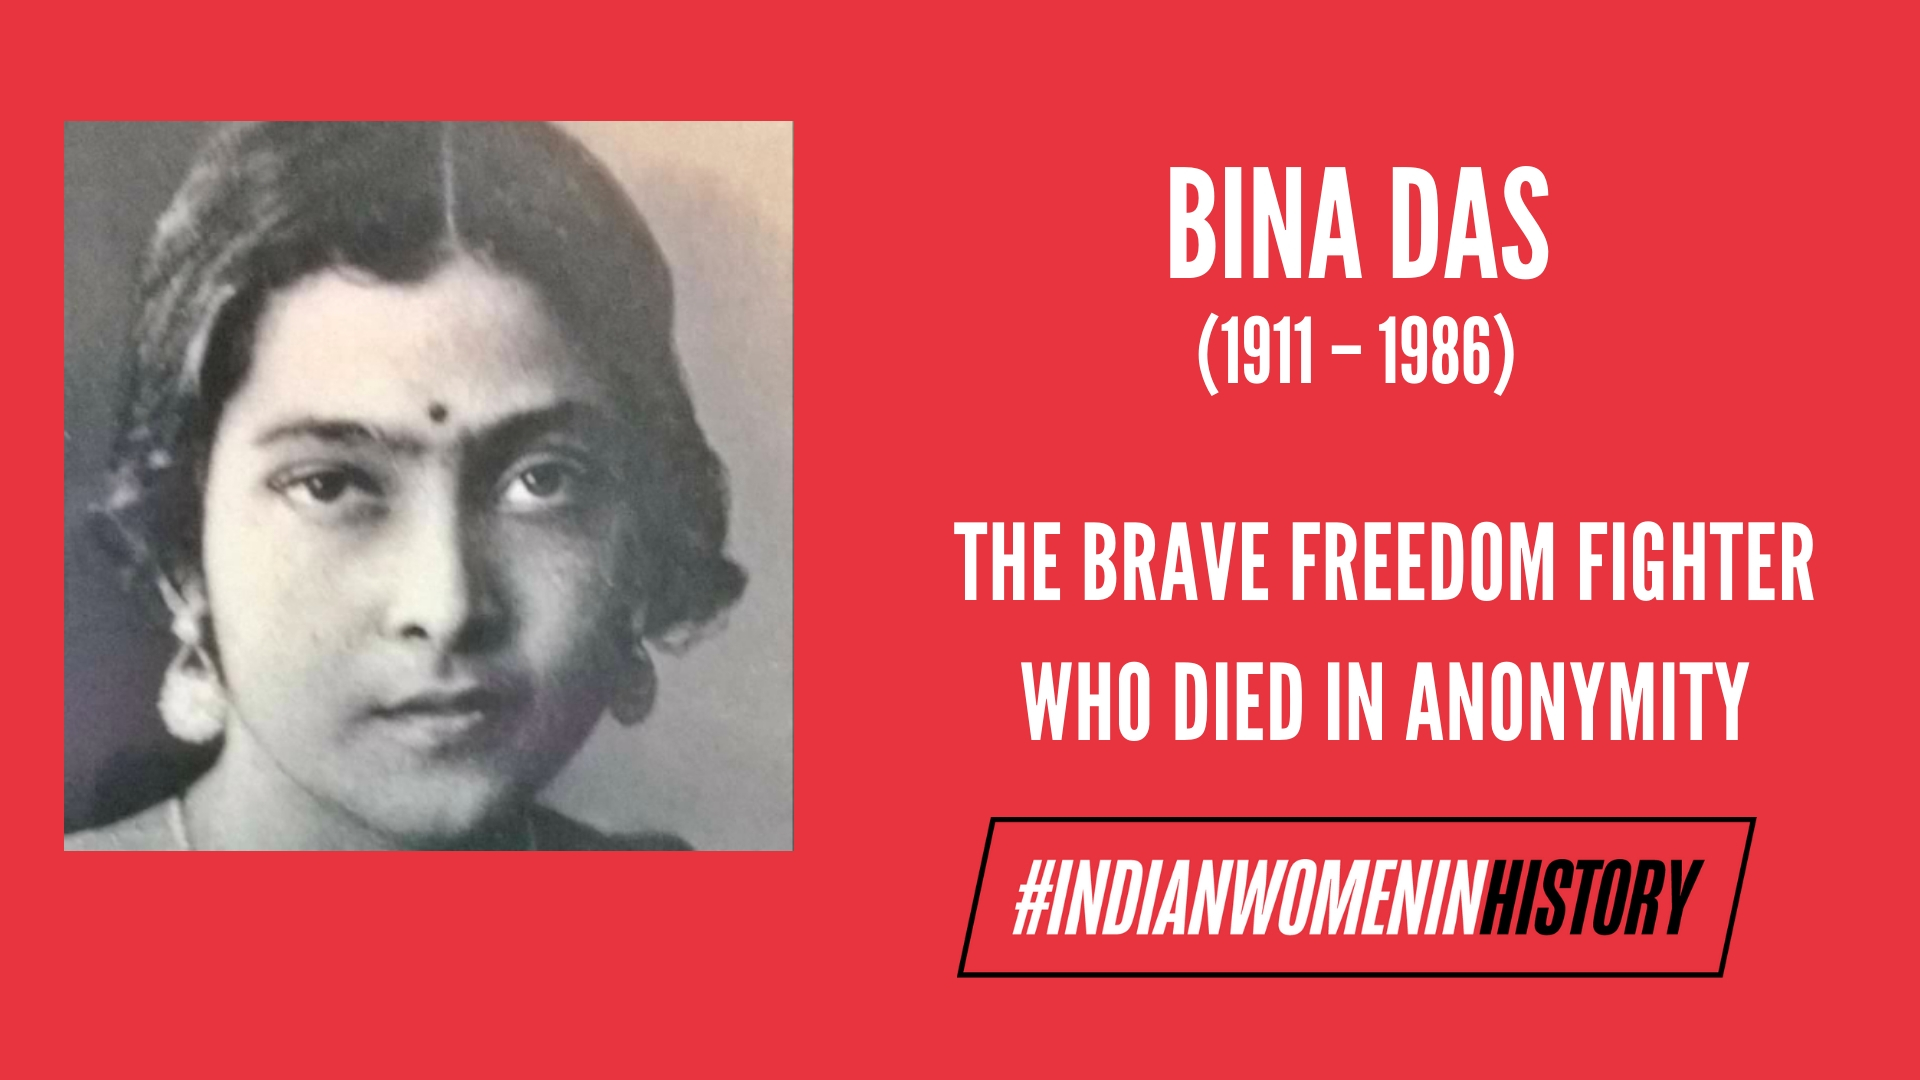 Bina Das: The Brave Freedom Fighter Who Died In Anonymity